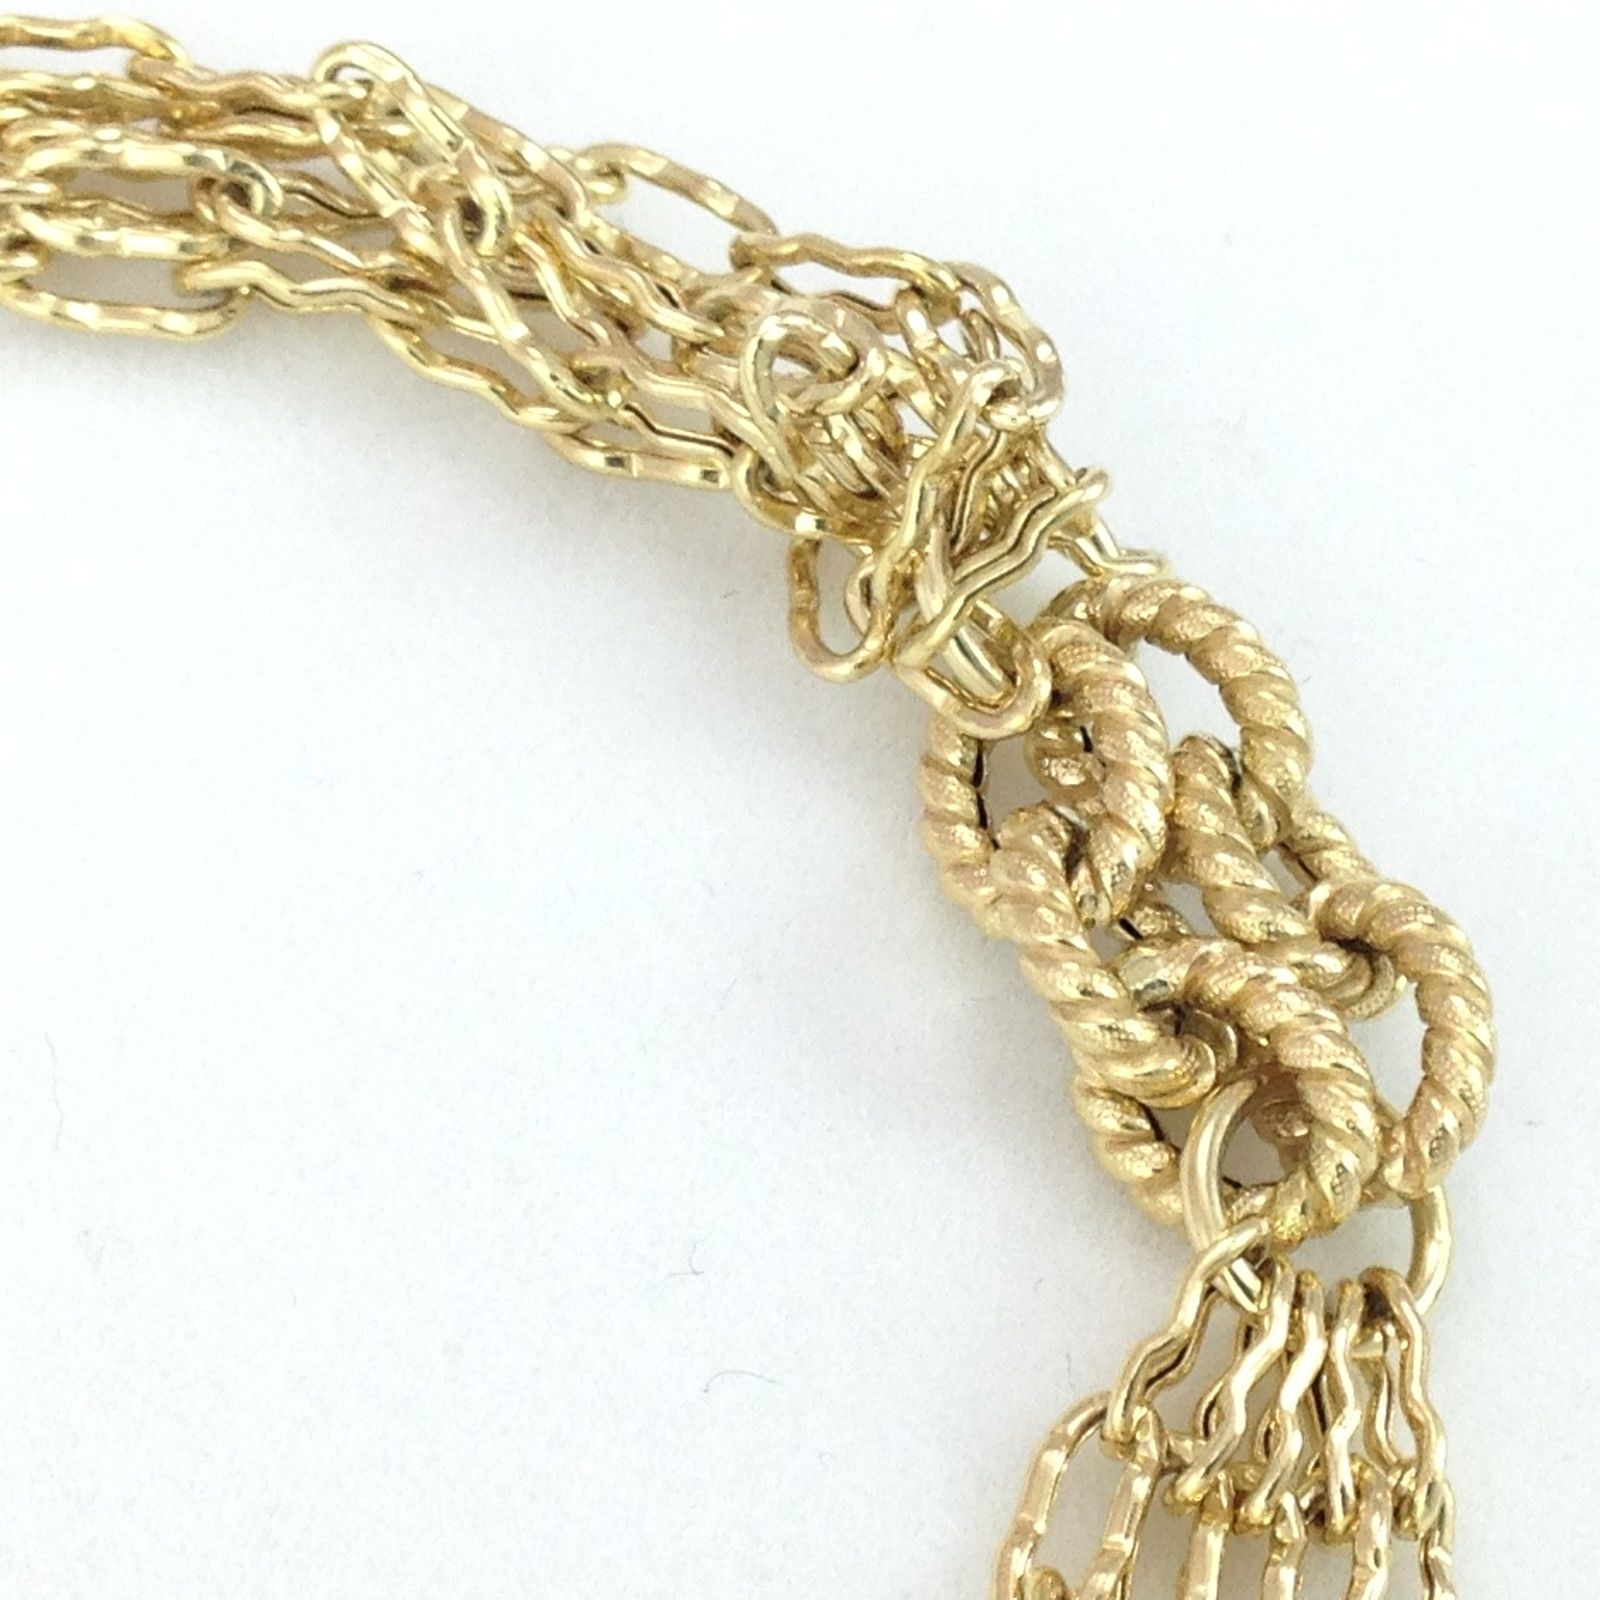 Genuine 14K Yellow Gold Adjustable Bracelet 7-8 inches $775 -  6.8 gr. NWT